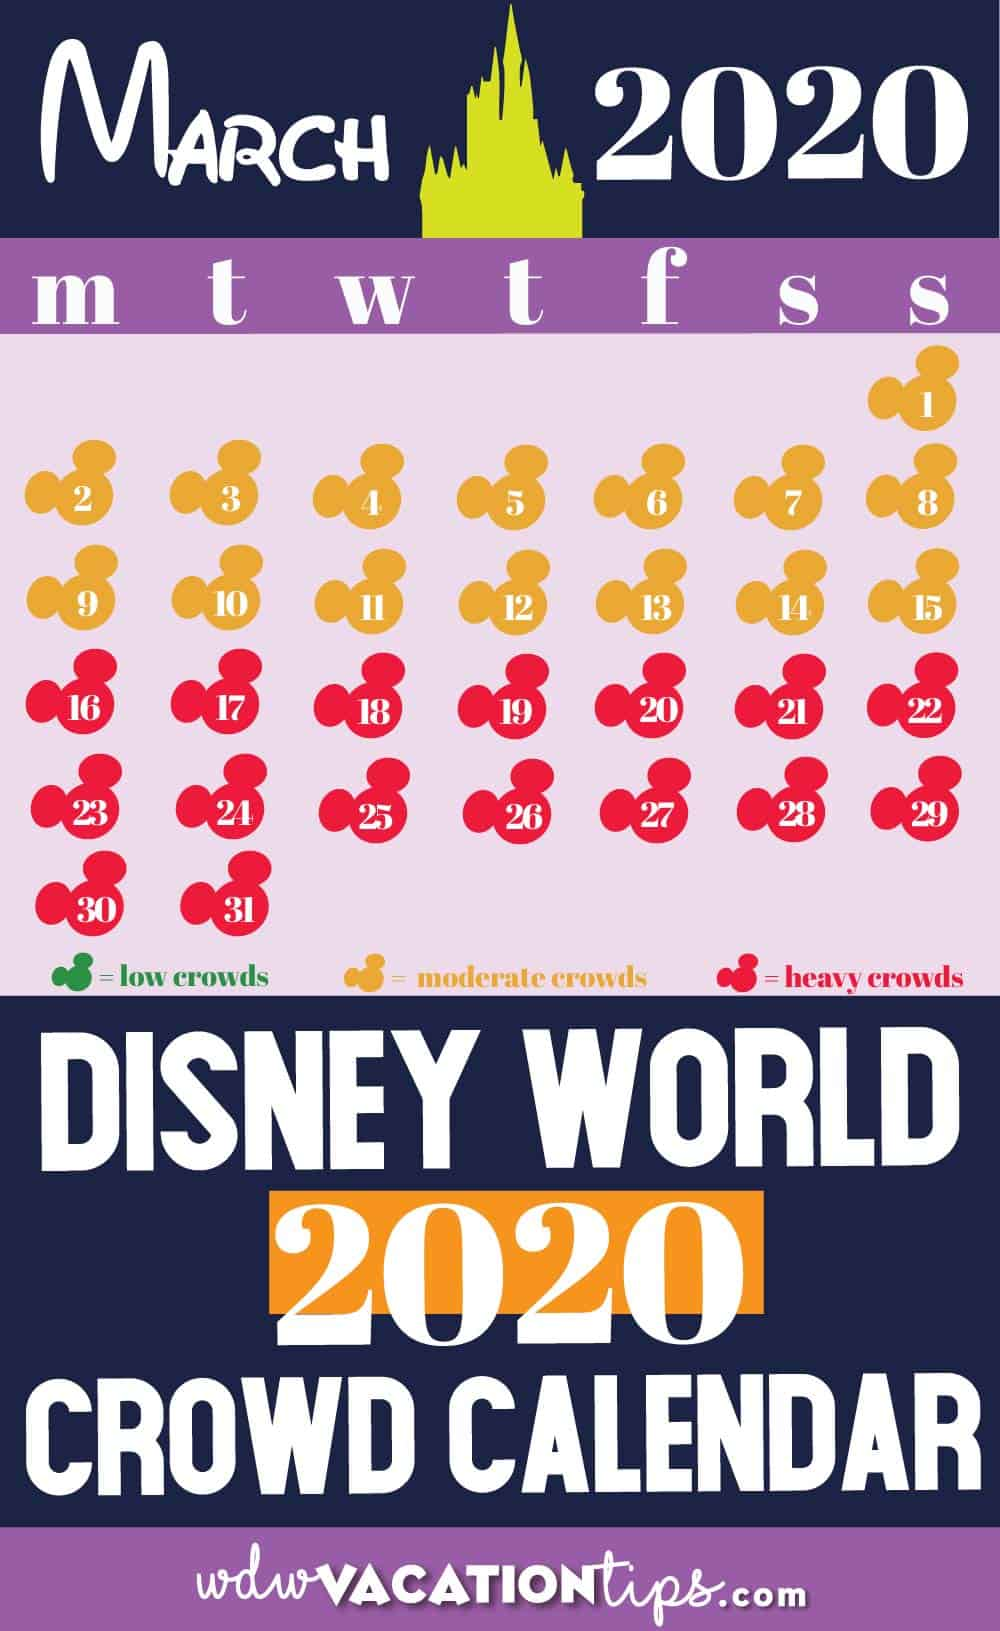 Disney World Crowd Calendar for 2020 2